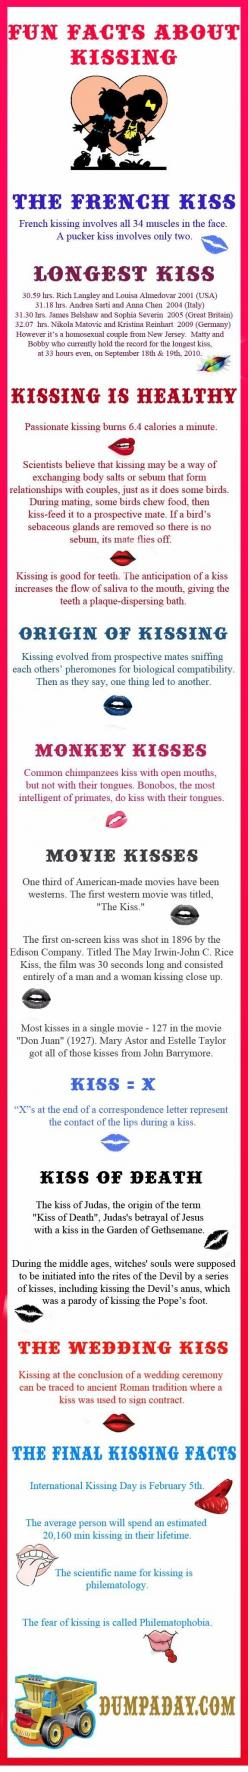 Kissing facts Nibblers will help you pucker those sensual lips. Shop online 24/7 www.LoveBug.YourPassionConsultant.com use code: PINME20: 3Kissingg Factss, Kissing Facts, Kiss Facts, Funny, Facts Nibblers, Fun Facts, Passion, Random Facts